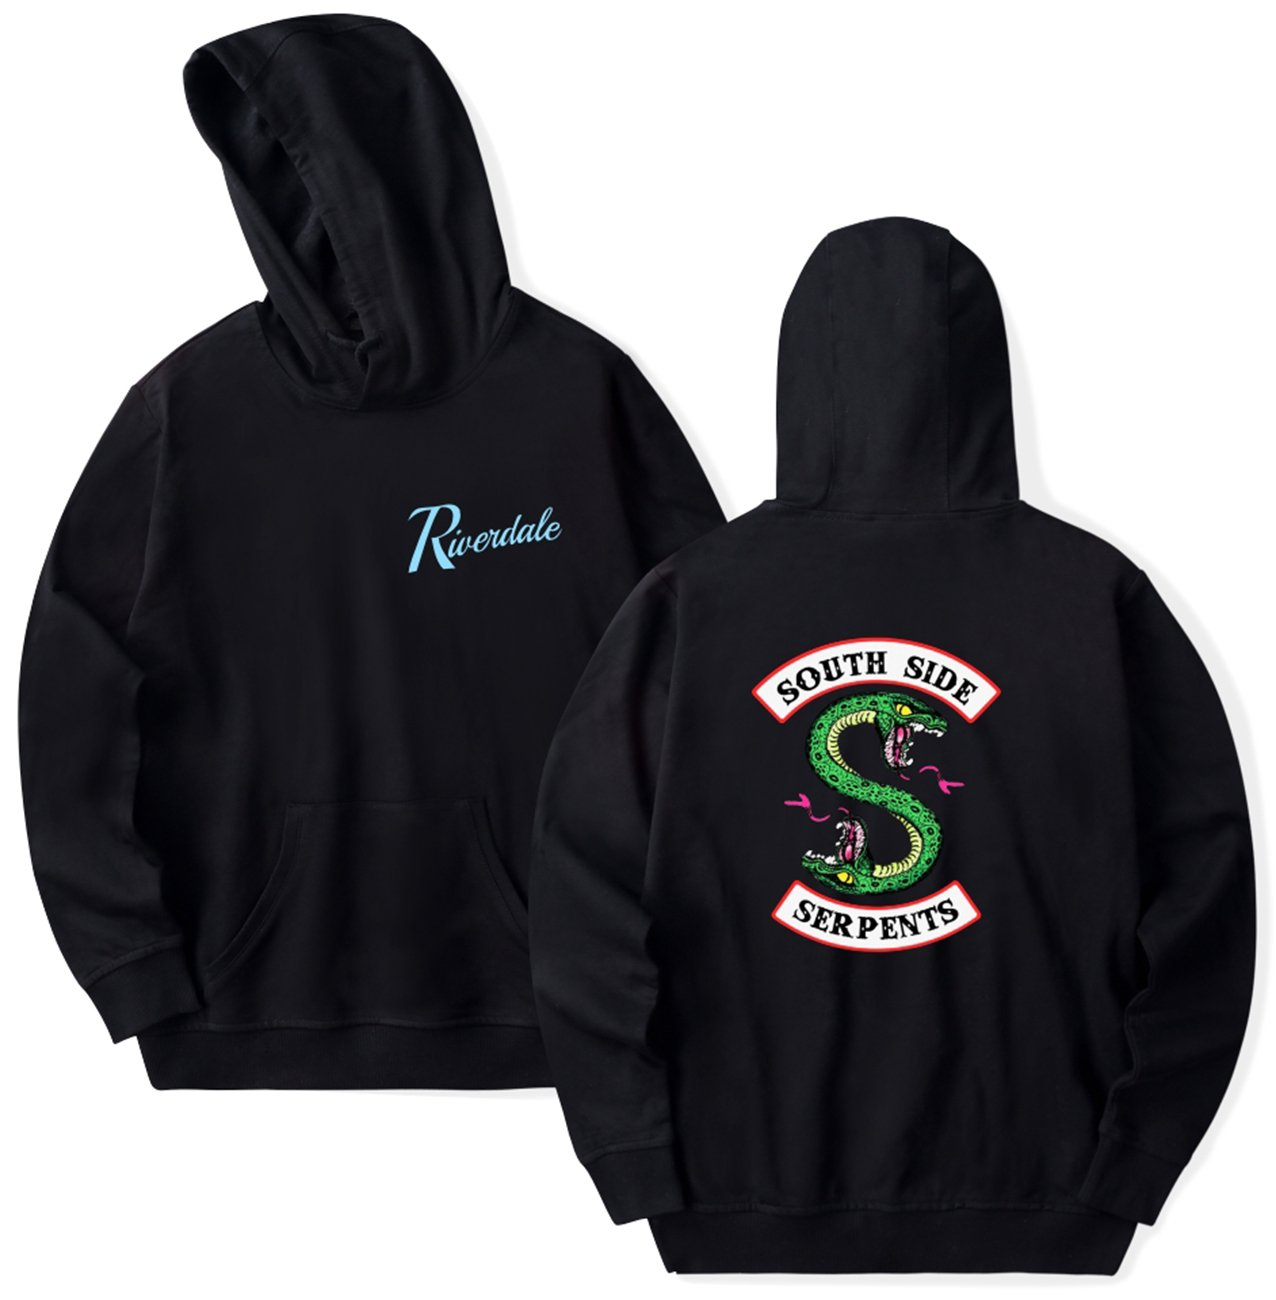 SERAPHY Unisex Hoodie Riverdale Southside Serpents Sweatshirt Black M